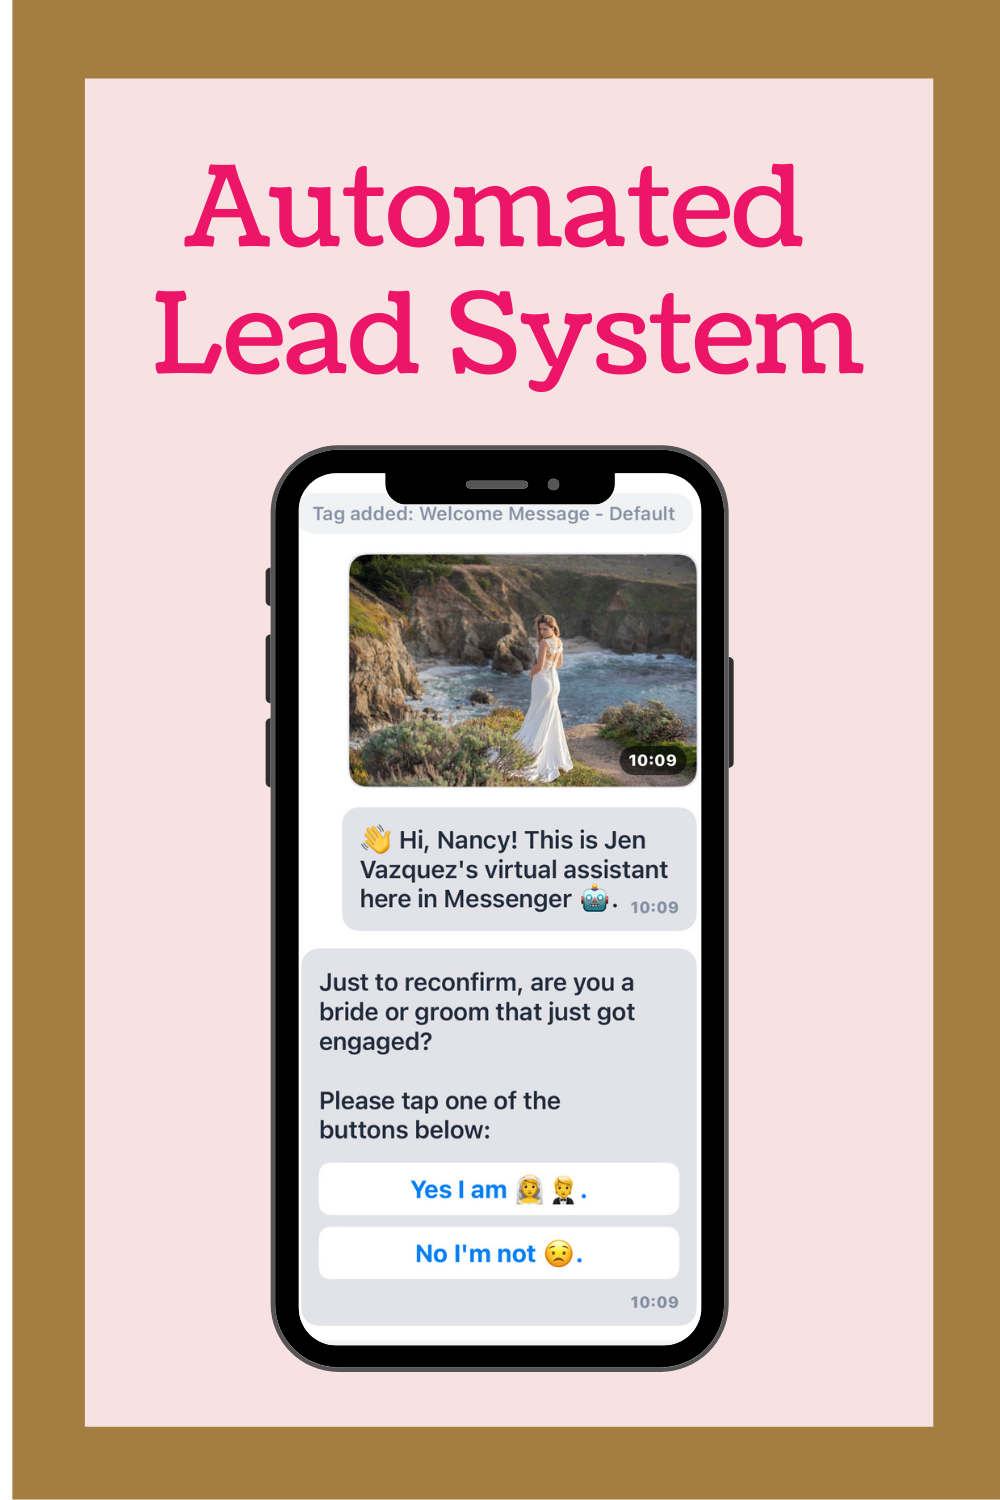 chatbot to automate leads